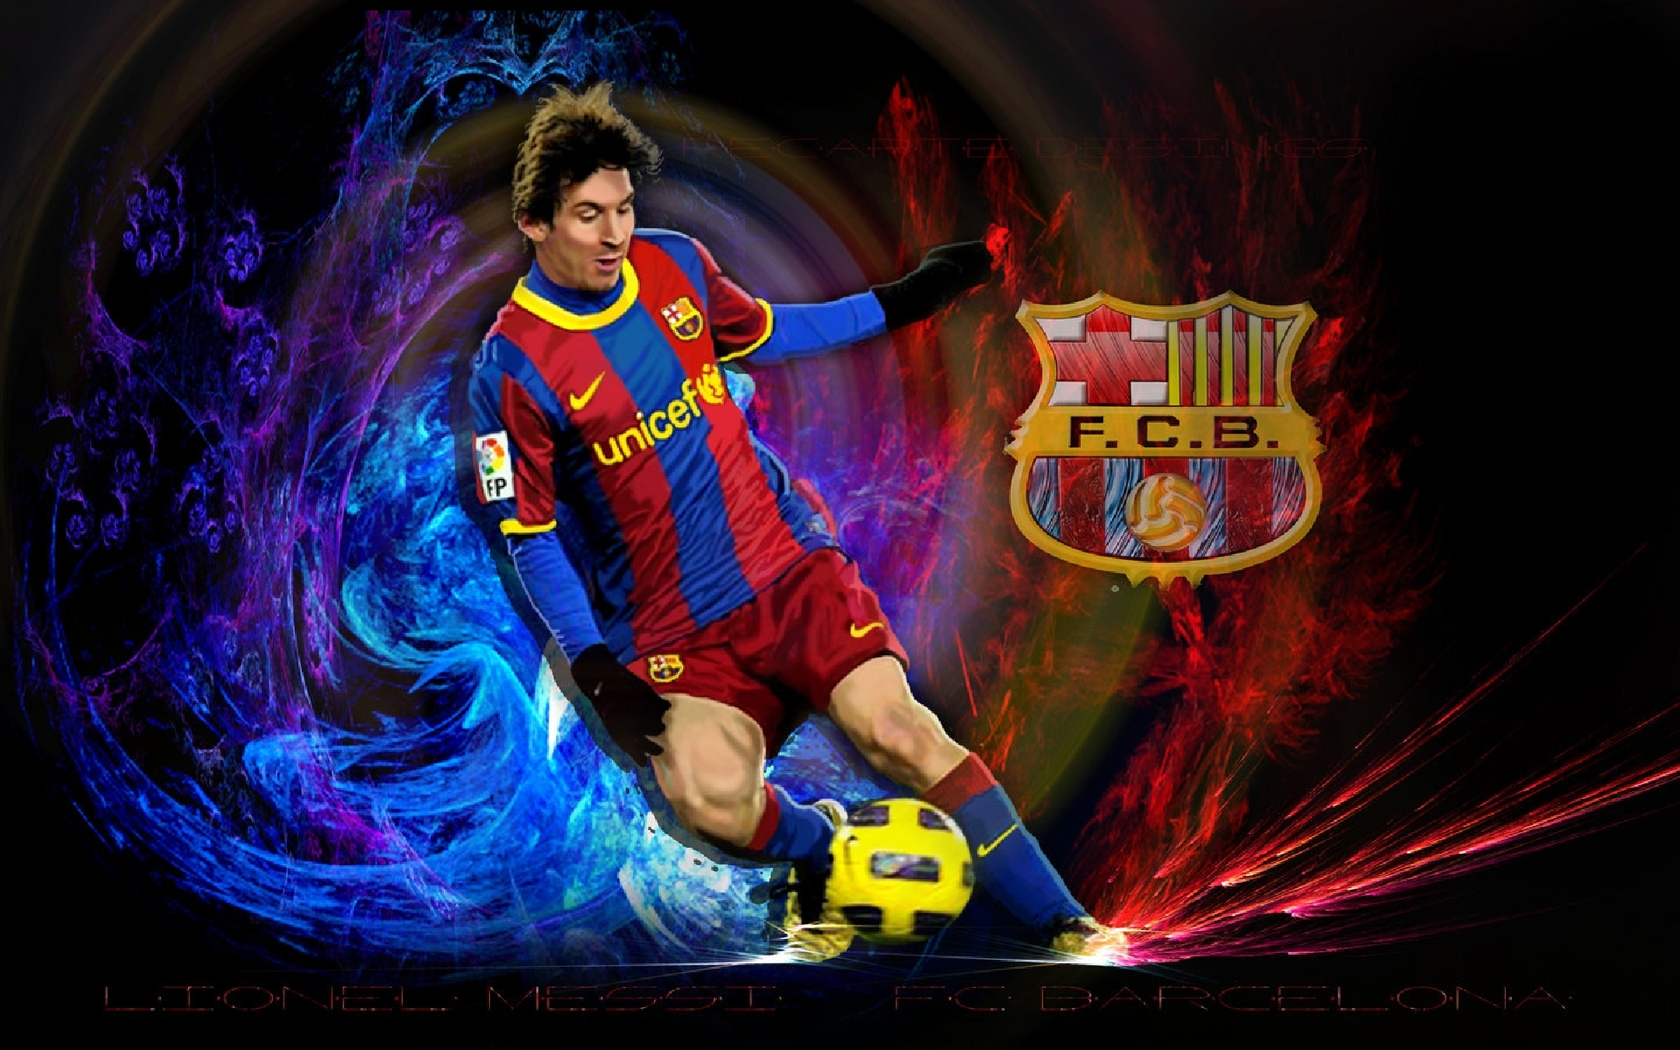 Cool-Soccer-Ball-1920%C3%971080-Cool-Soccer-Pictures-Adorable-W-wallpaper-wpc5803708